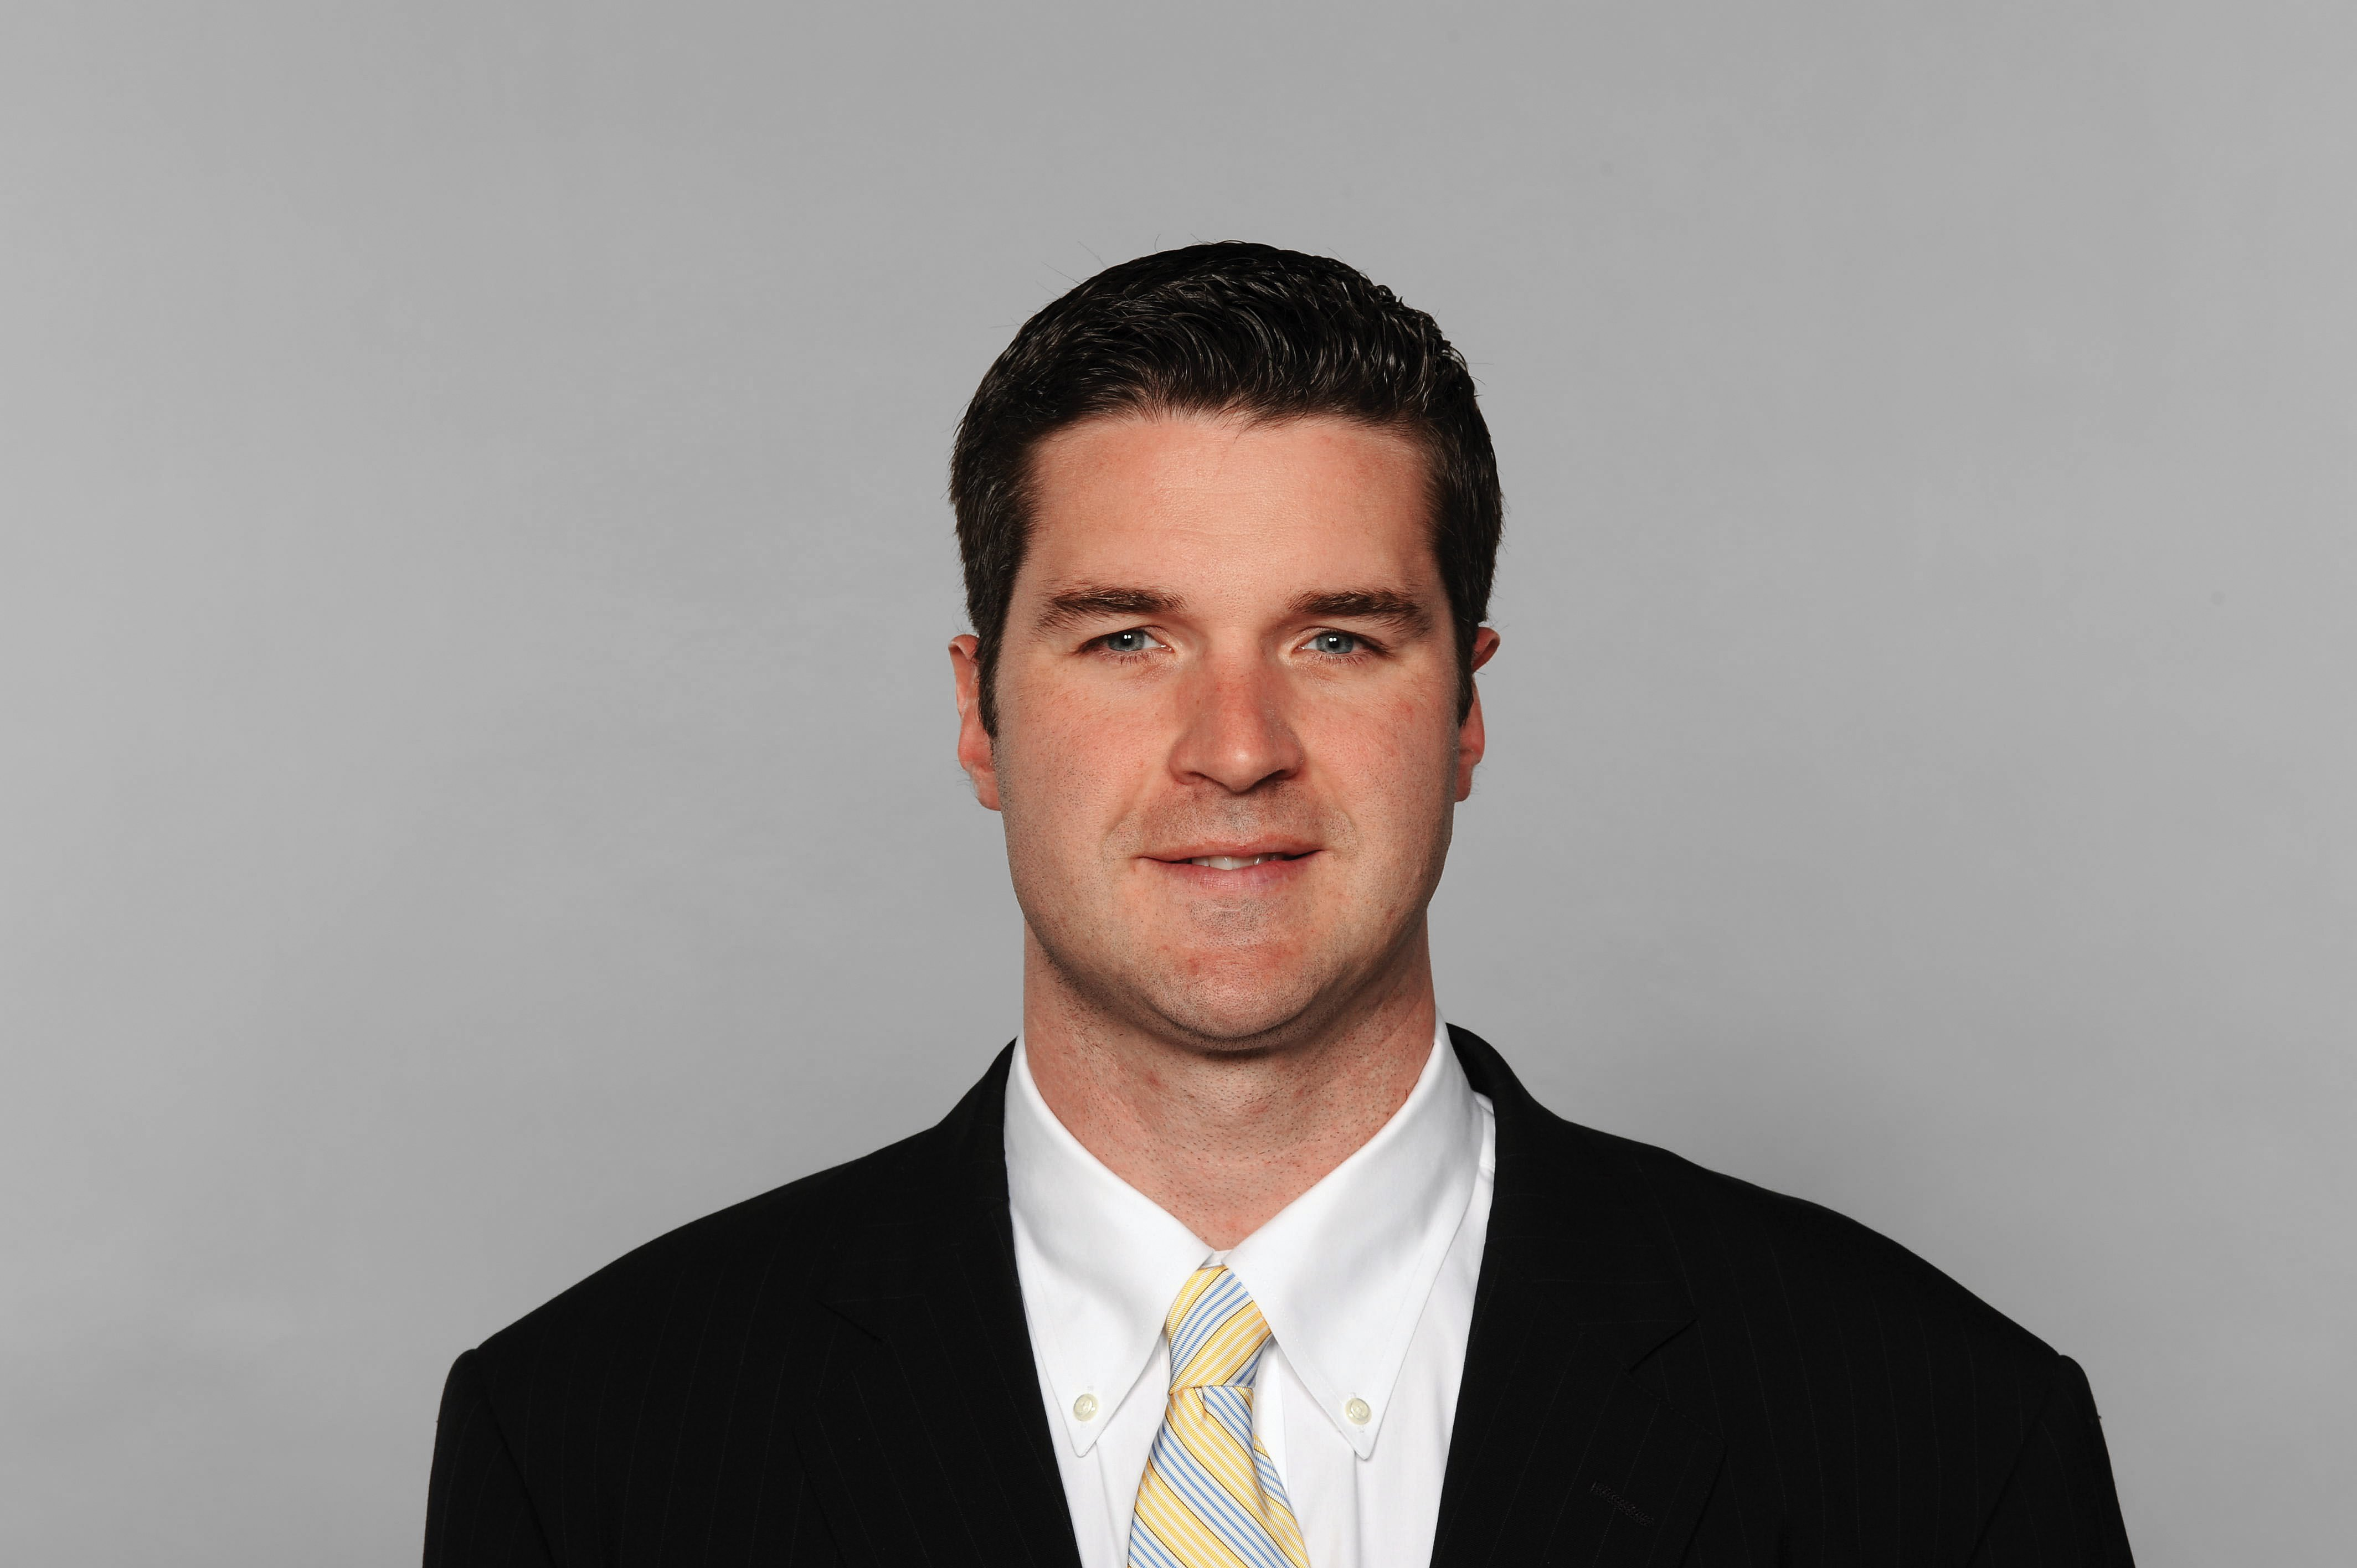 The Bills made it official Friday that they interviewed Brian Gaine for their GM opening.  (Photo by Getty Images)